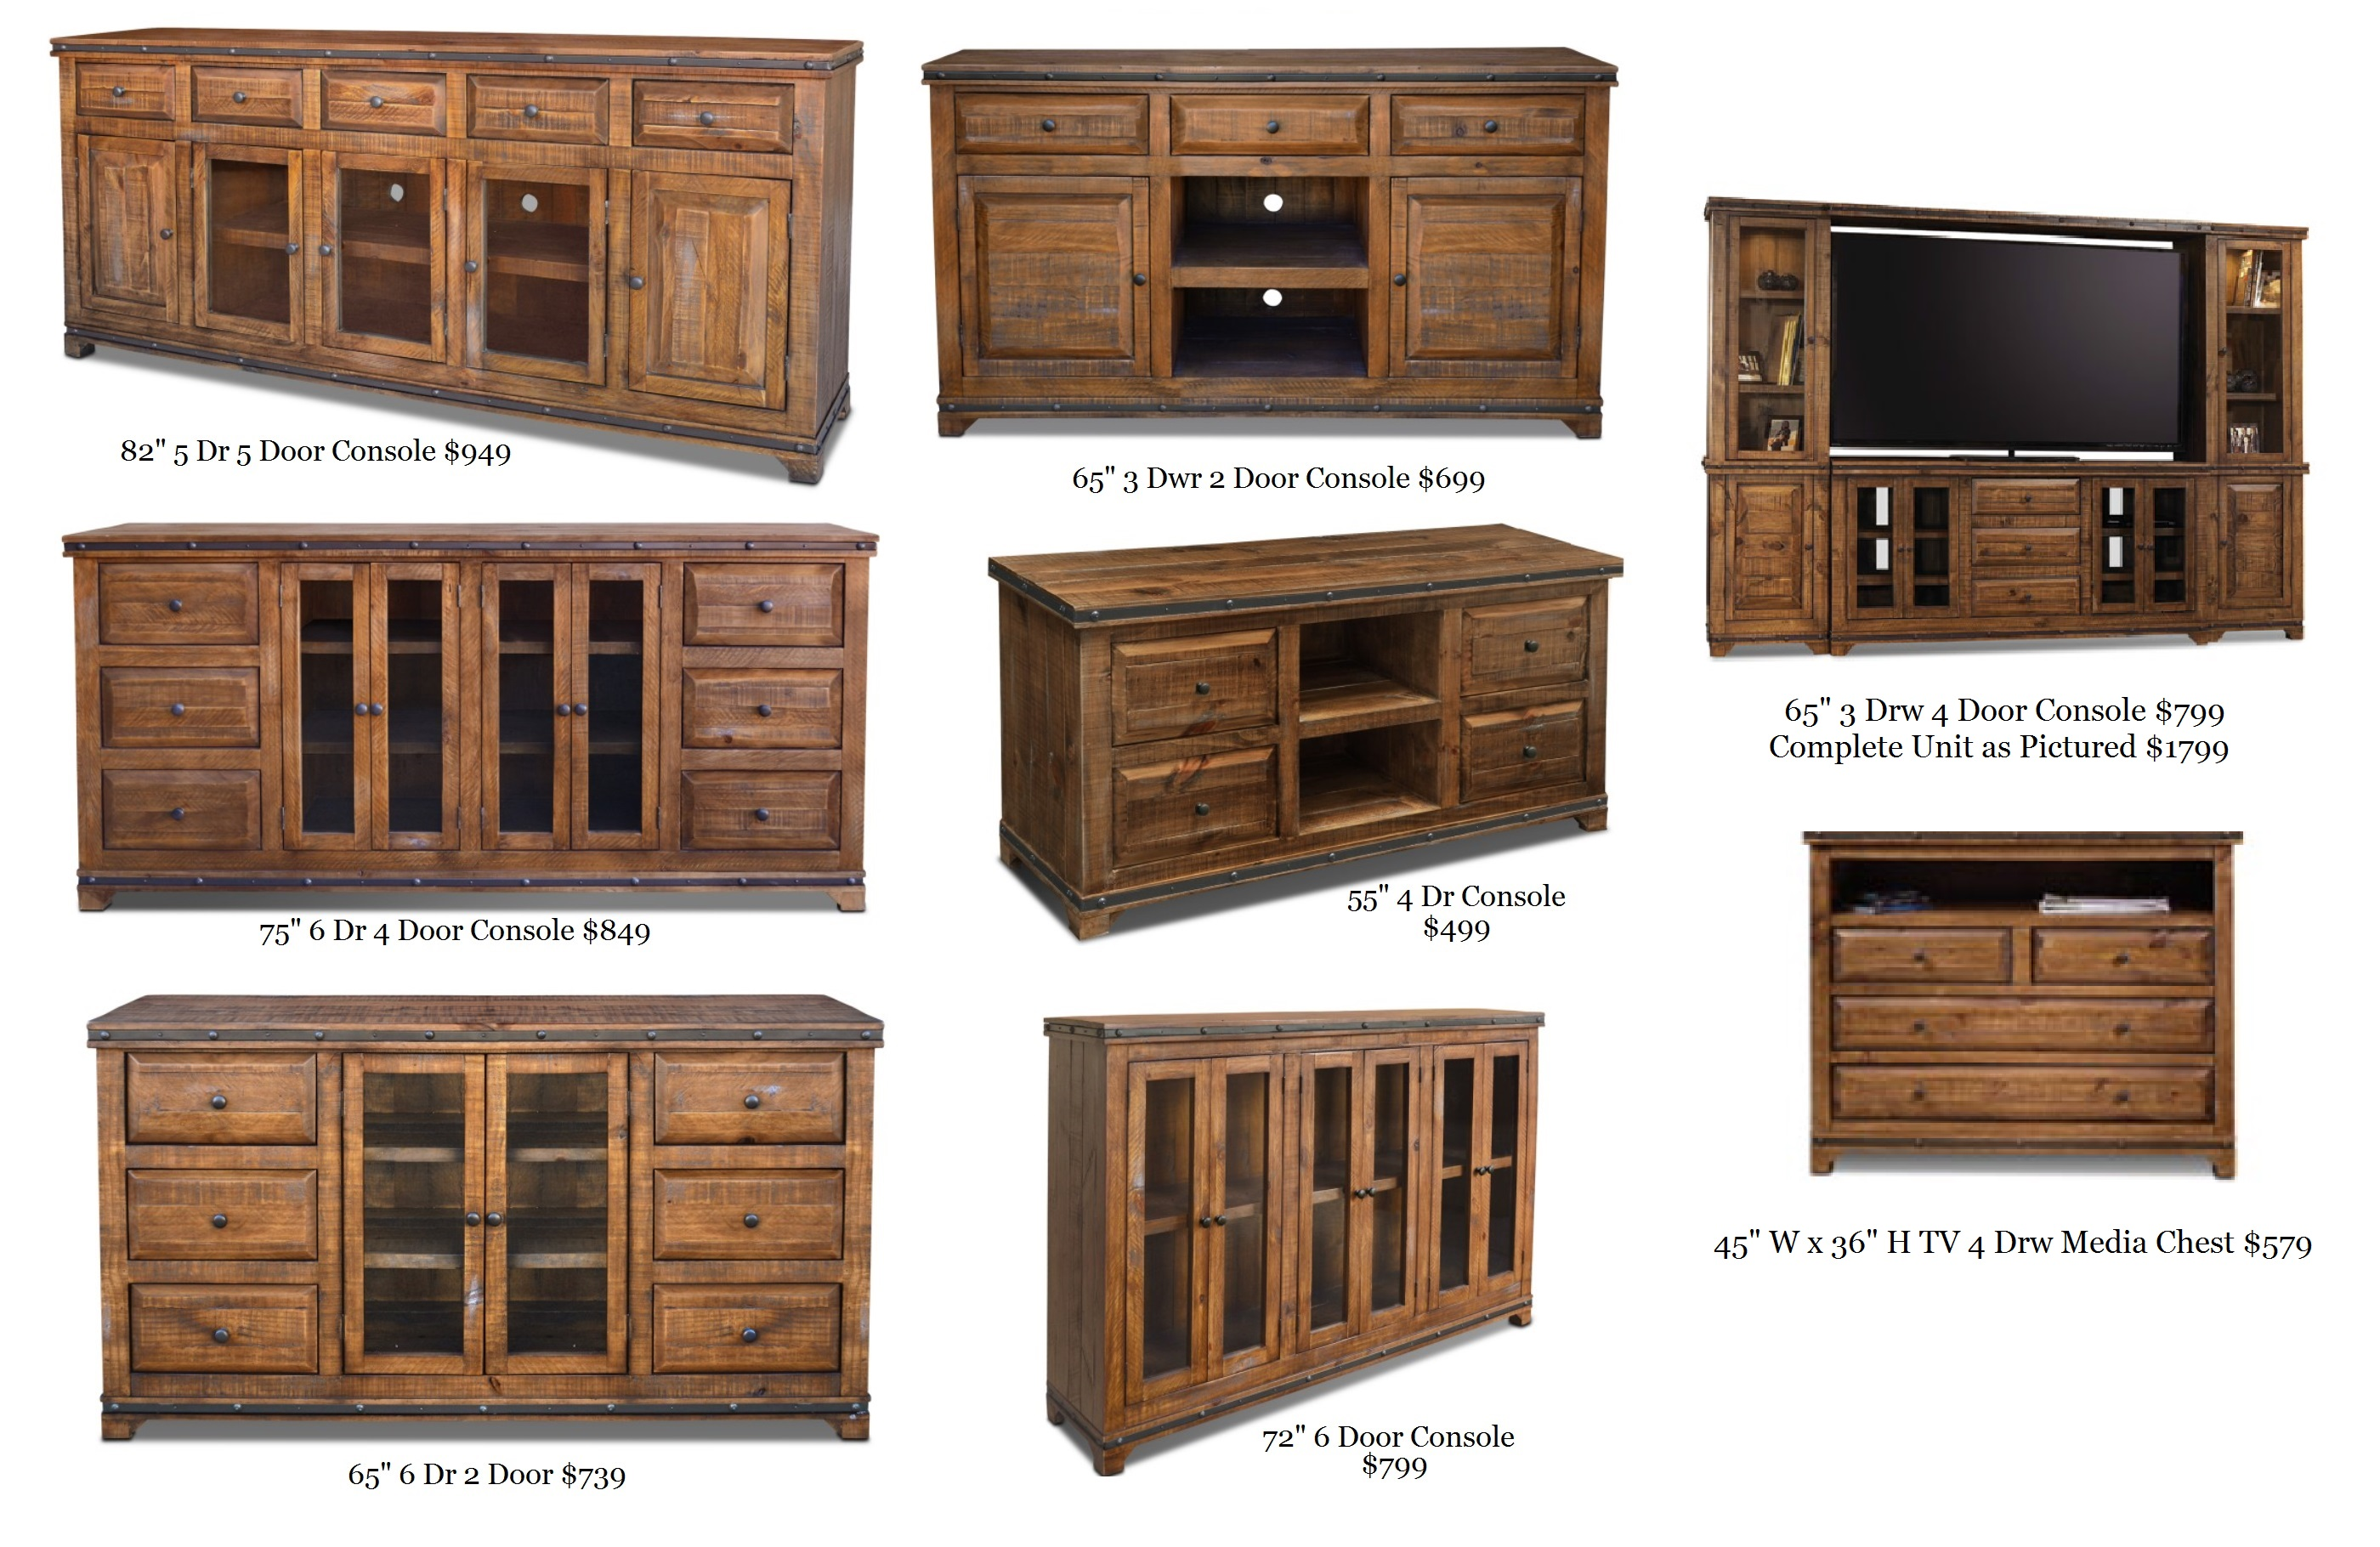 Horizon Westwood Solid Wood Consoles